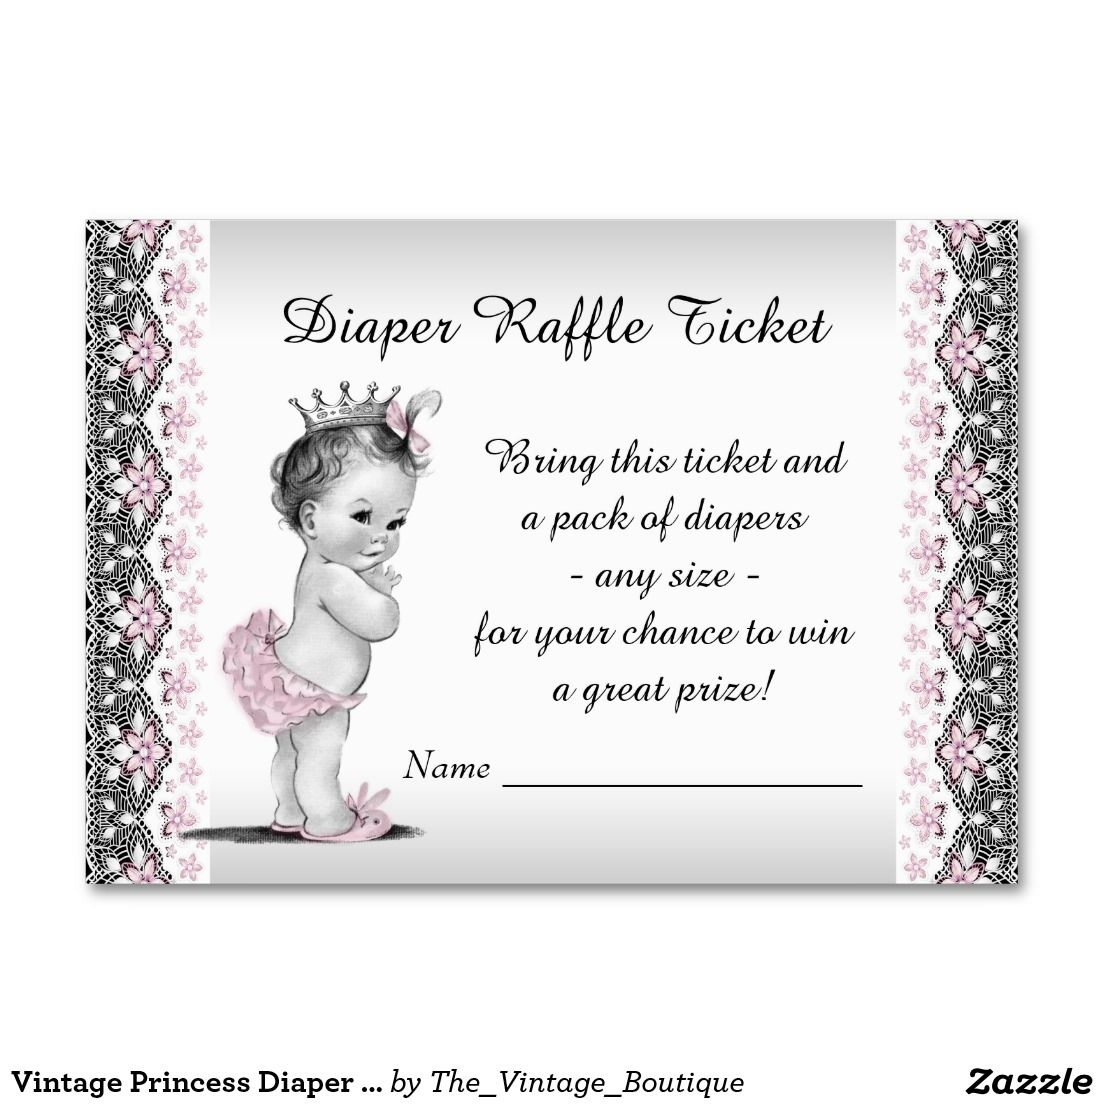 Vintage princess diaper raffle ticket large business cards pack vintage princess diaper raffle ticket large business cards pack of 100 magicingreecefo Choice Image